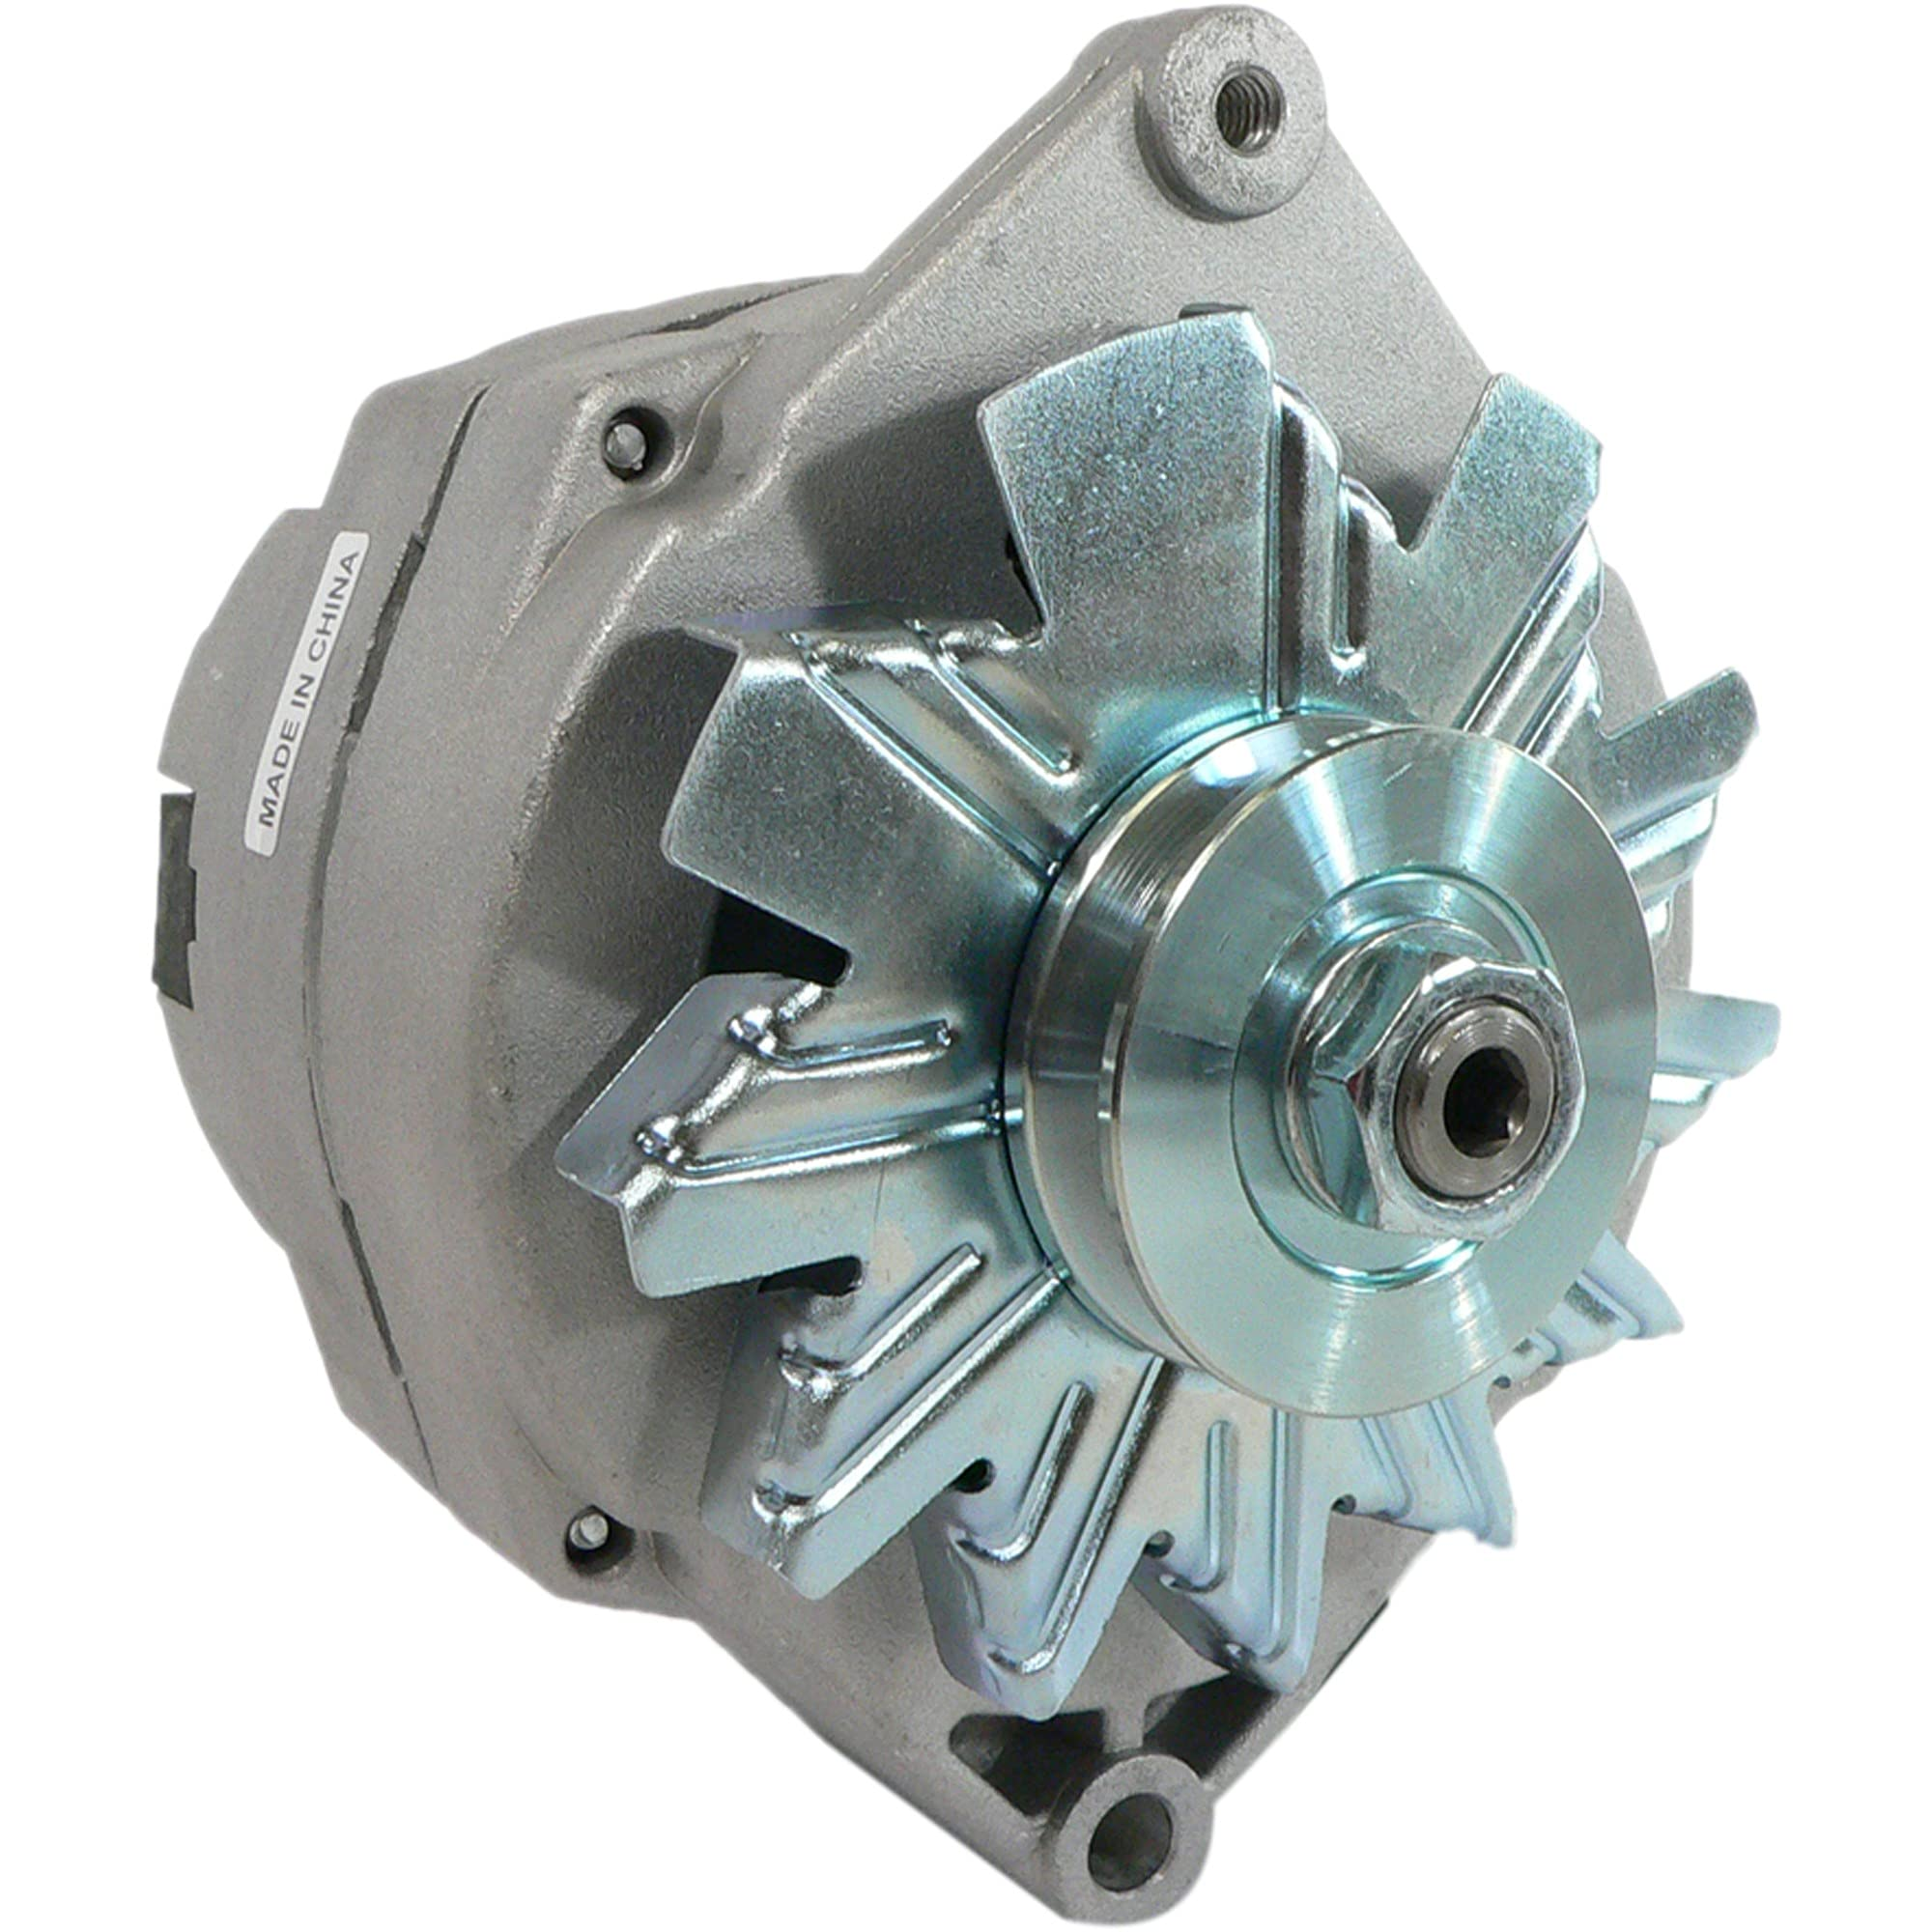 DB Electrical HO-ADR0335 / 10SISE-140 Amp New Alternator Compatible with/Replacement for High output Chevy One 1-Wire 140 Amp 65 66 67 68 69 70 71 72 73 74 75 76 77 78 79 80 81 82 83 84 85